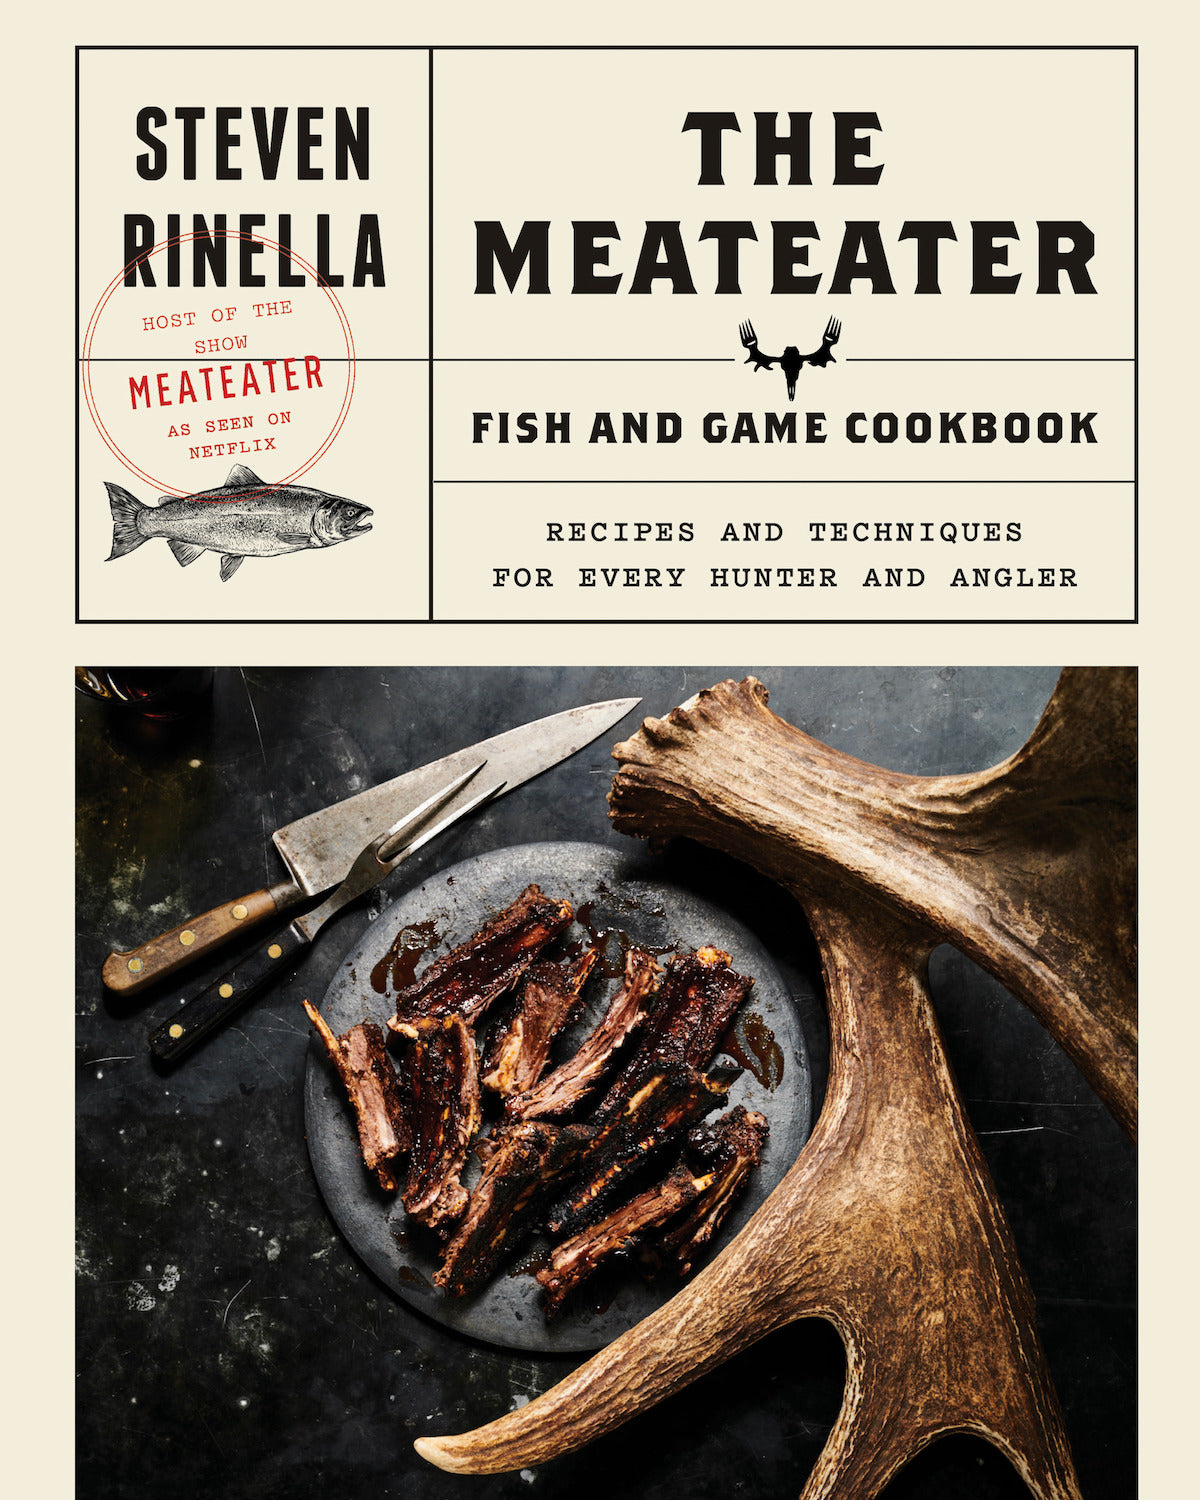 MeatEater Fish & Game Cookbook Cover